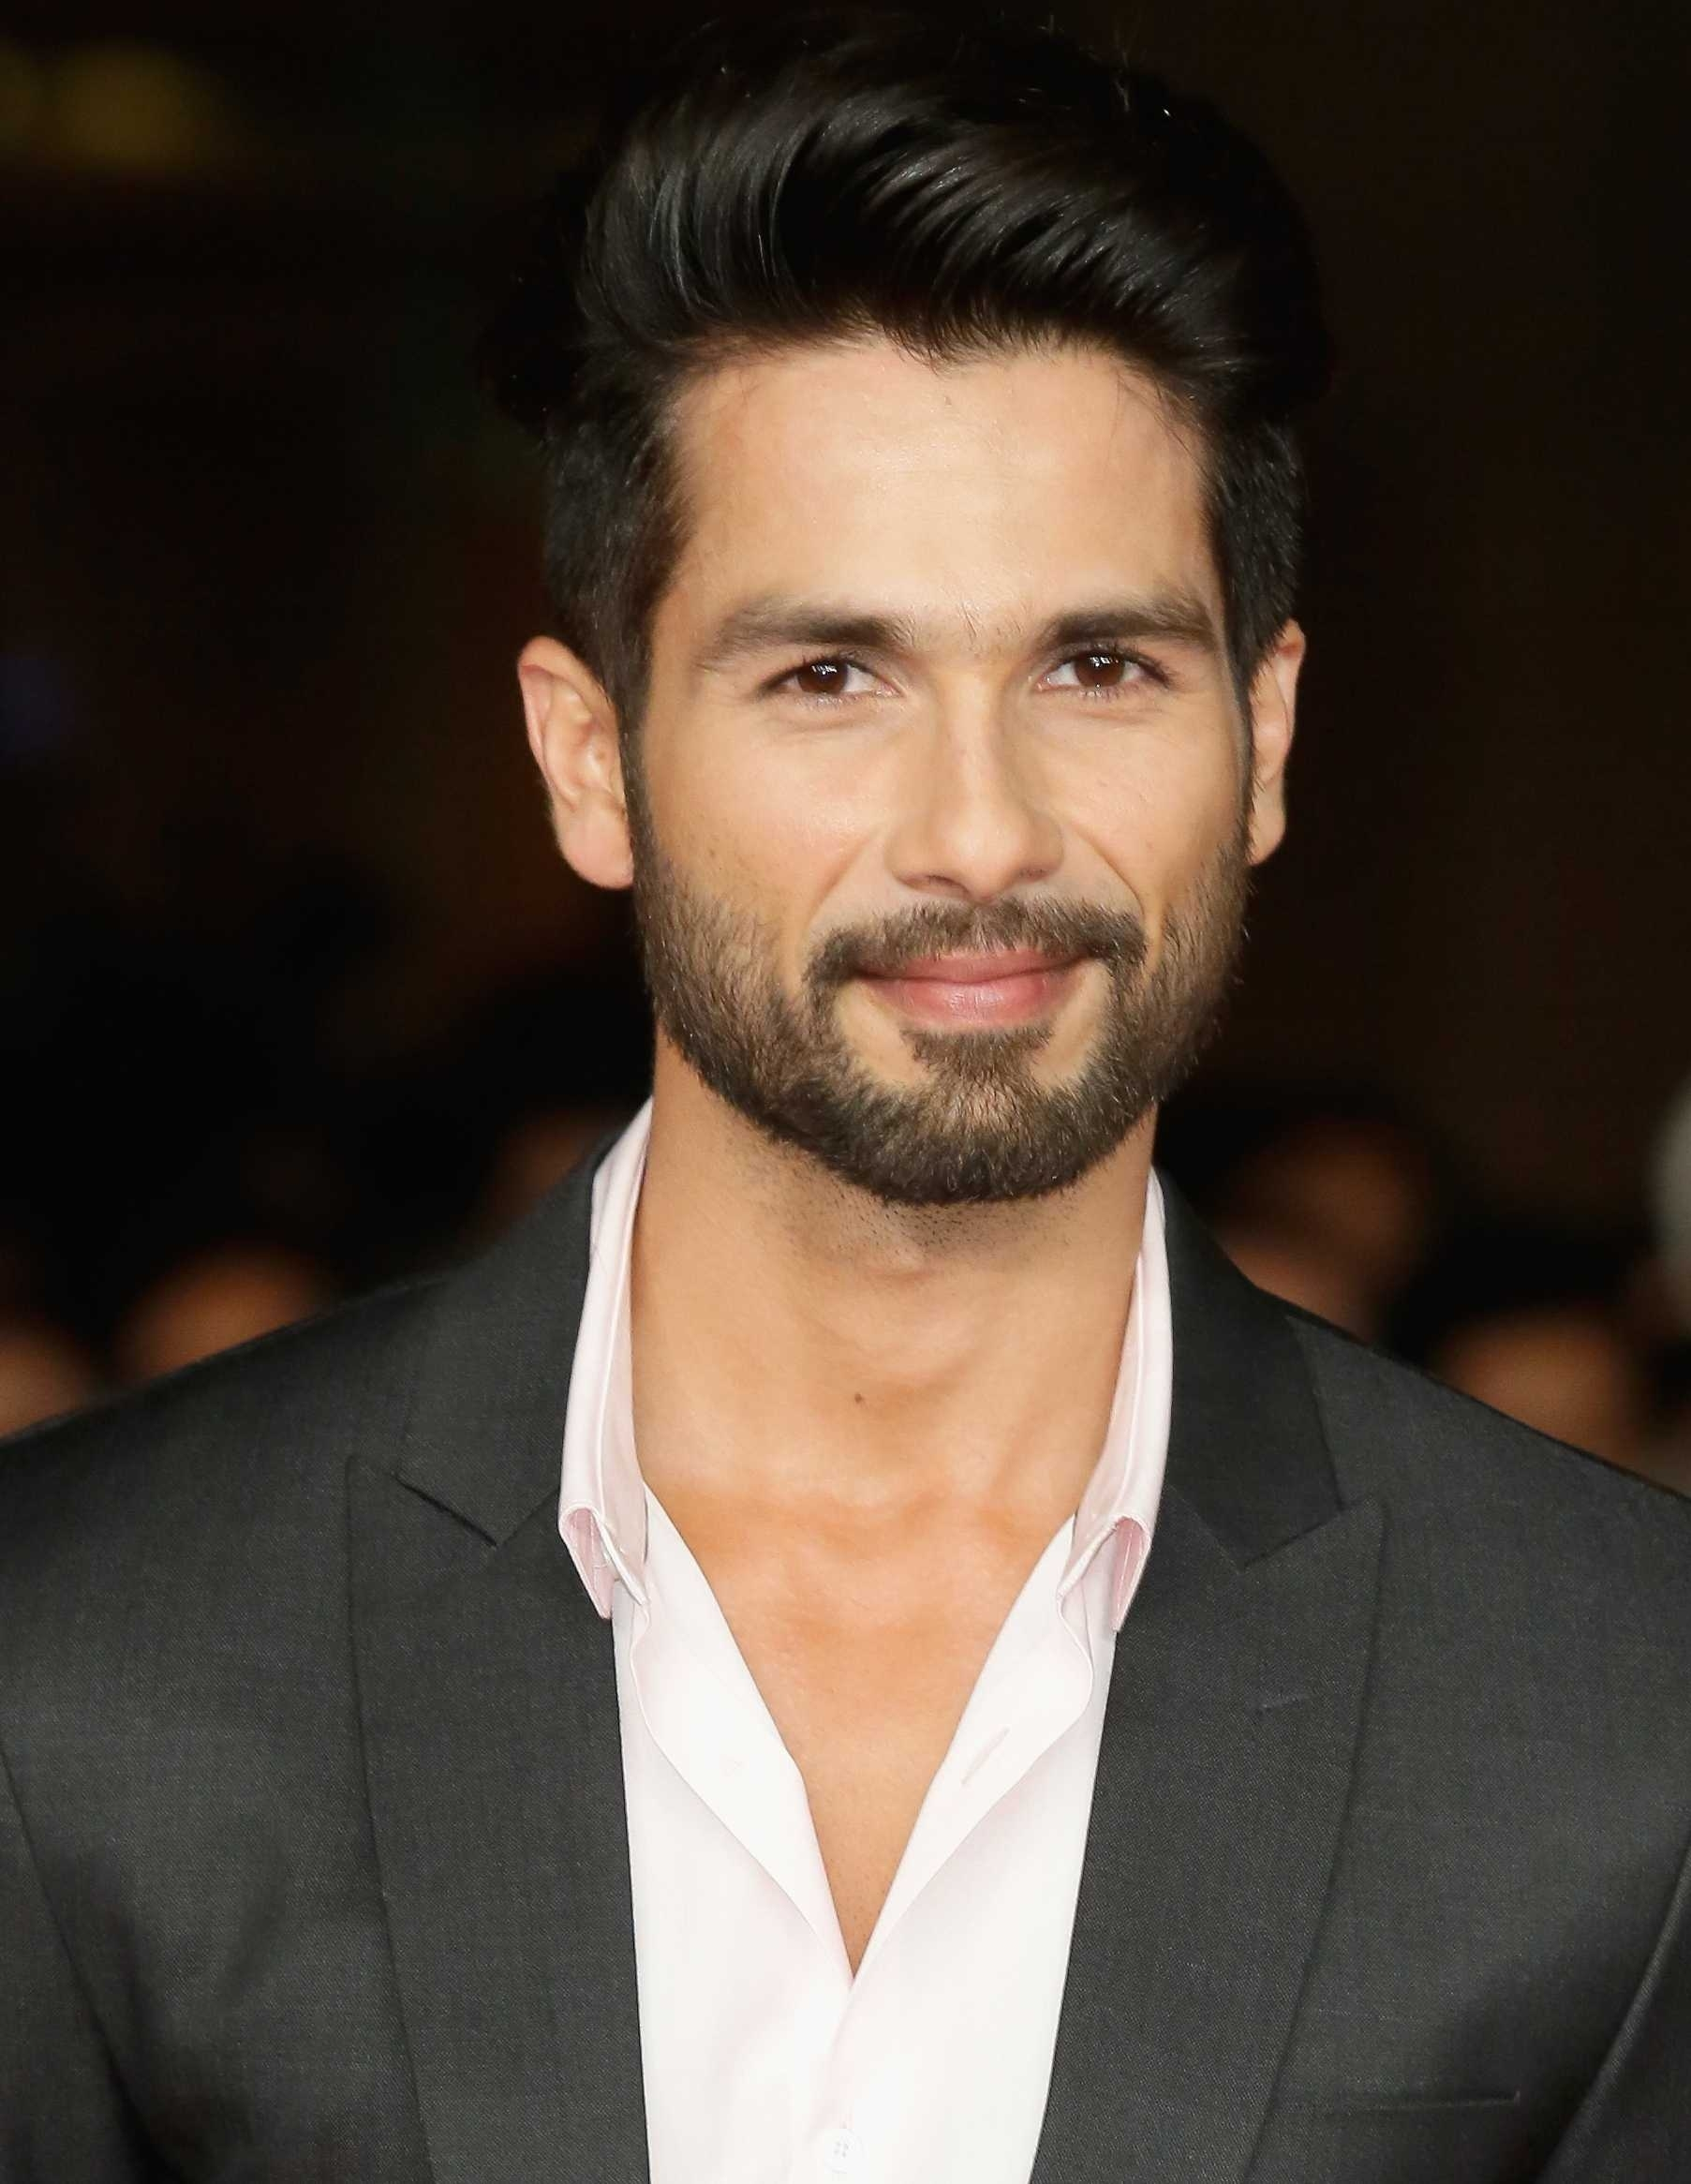 Haircut Styles For Men - How To Choose The Best Hairstyle For Your in Hairstyle For Square Face Indian